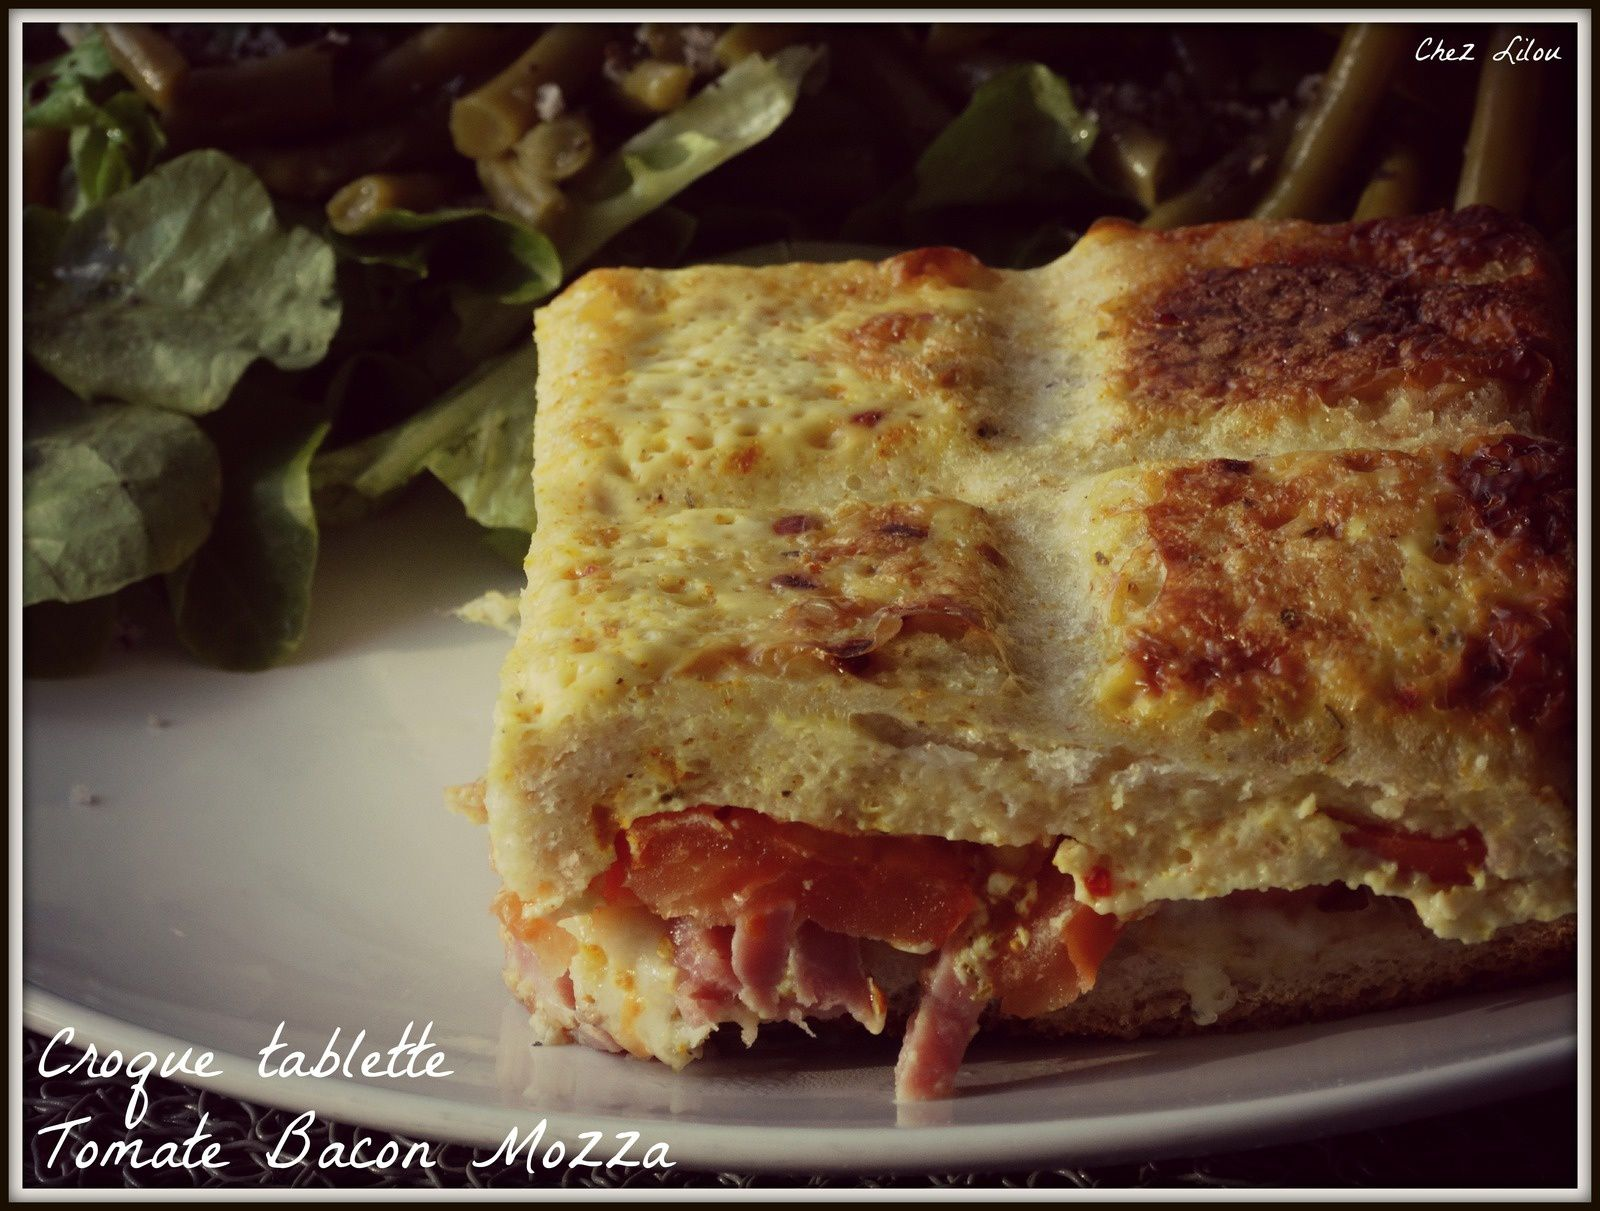 Croque tablettes Tomate Bacon Mozza